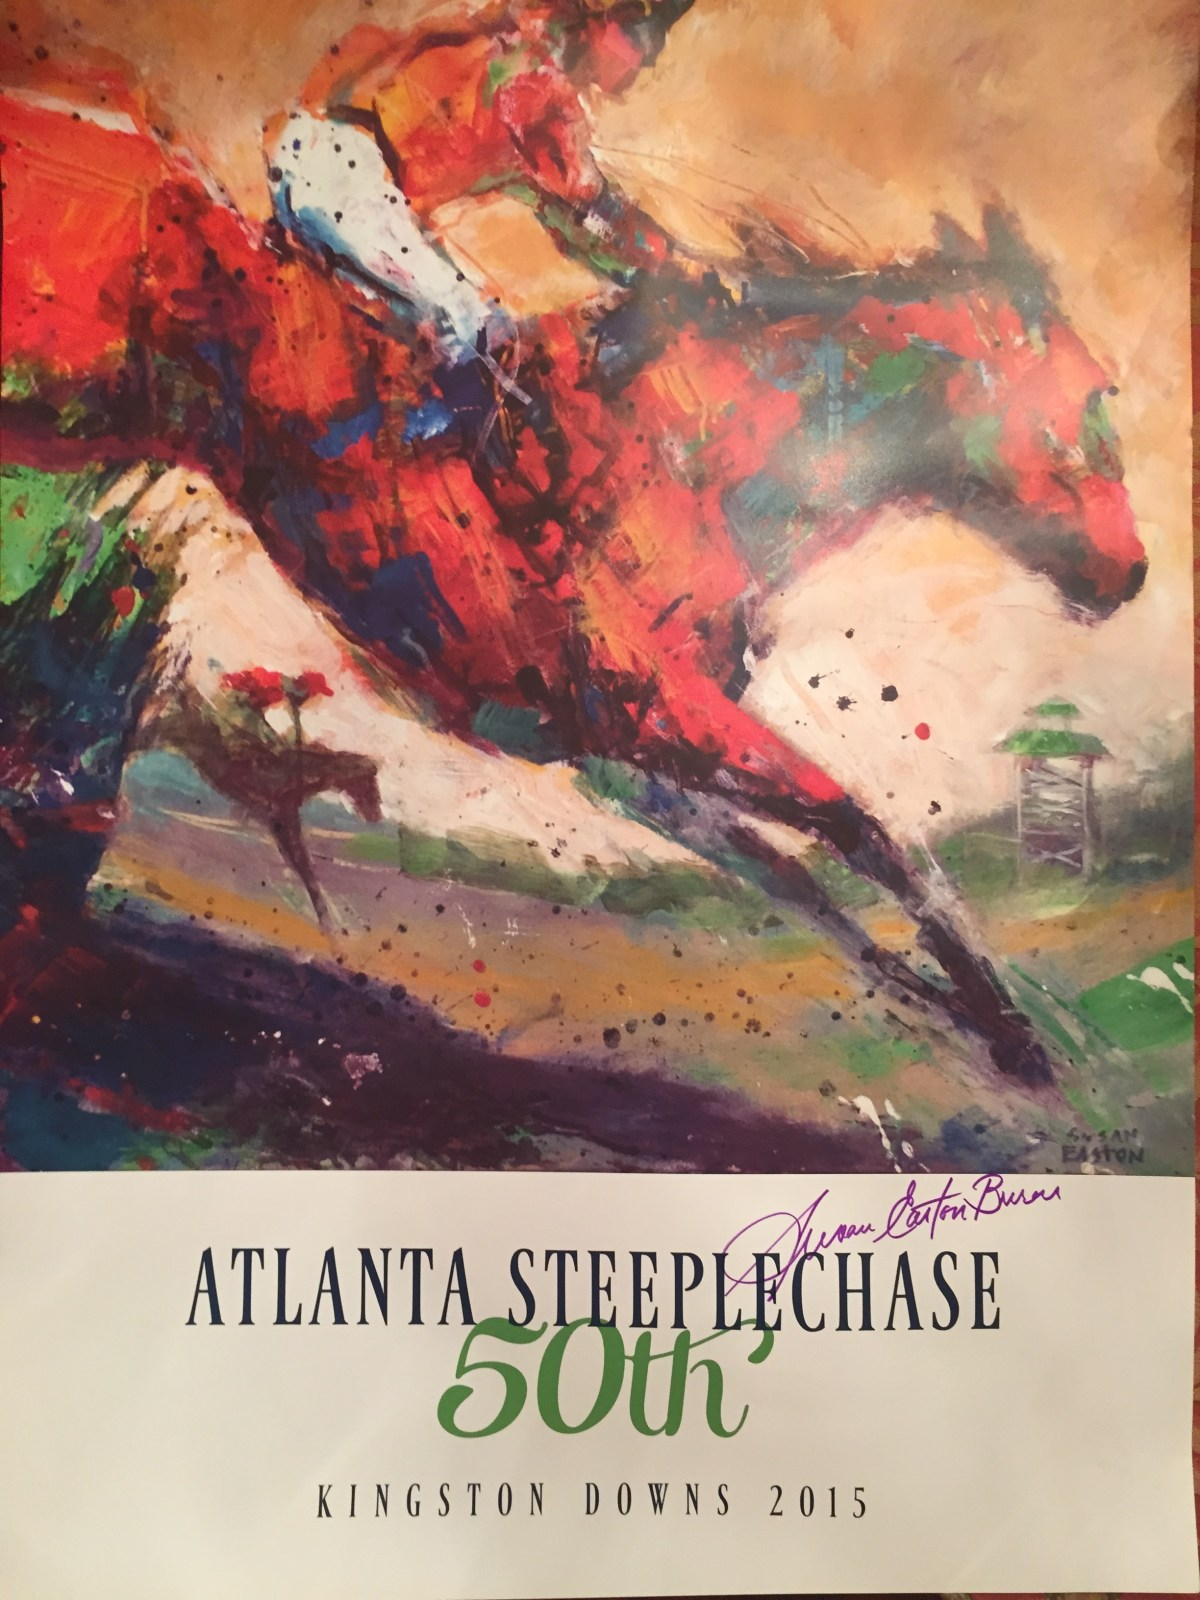 Atlanta Steeplechase 2015: My Four Favorite Things